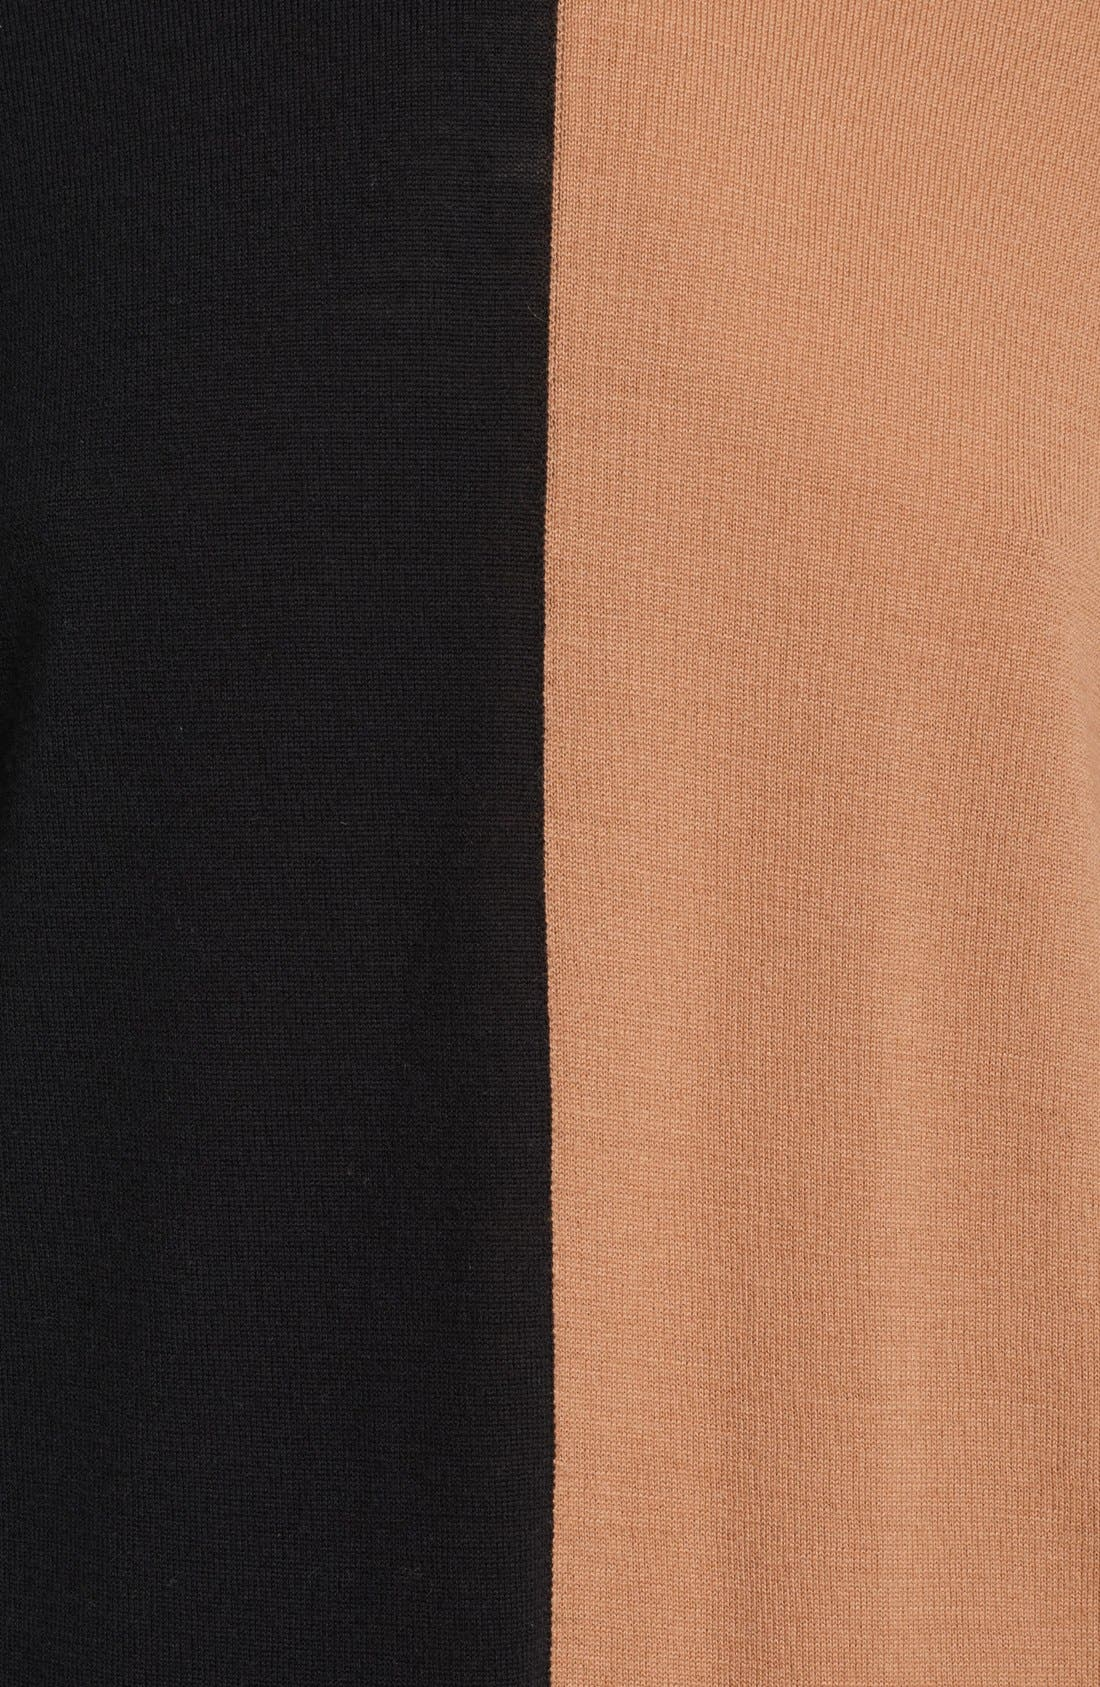 Alternate Image 2  - Michael Kors Colorblock Merino Wool Sweater